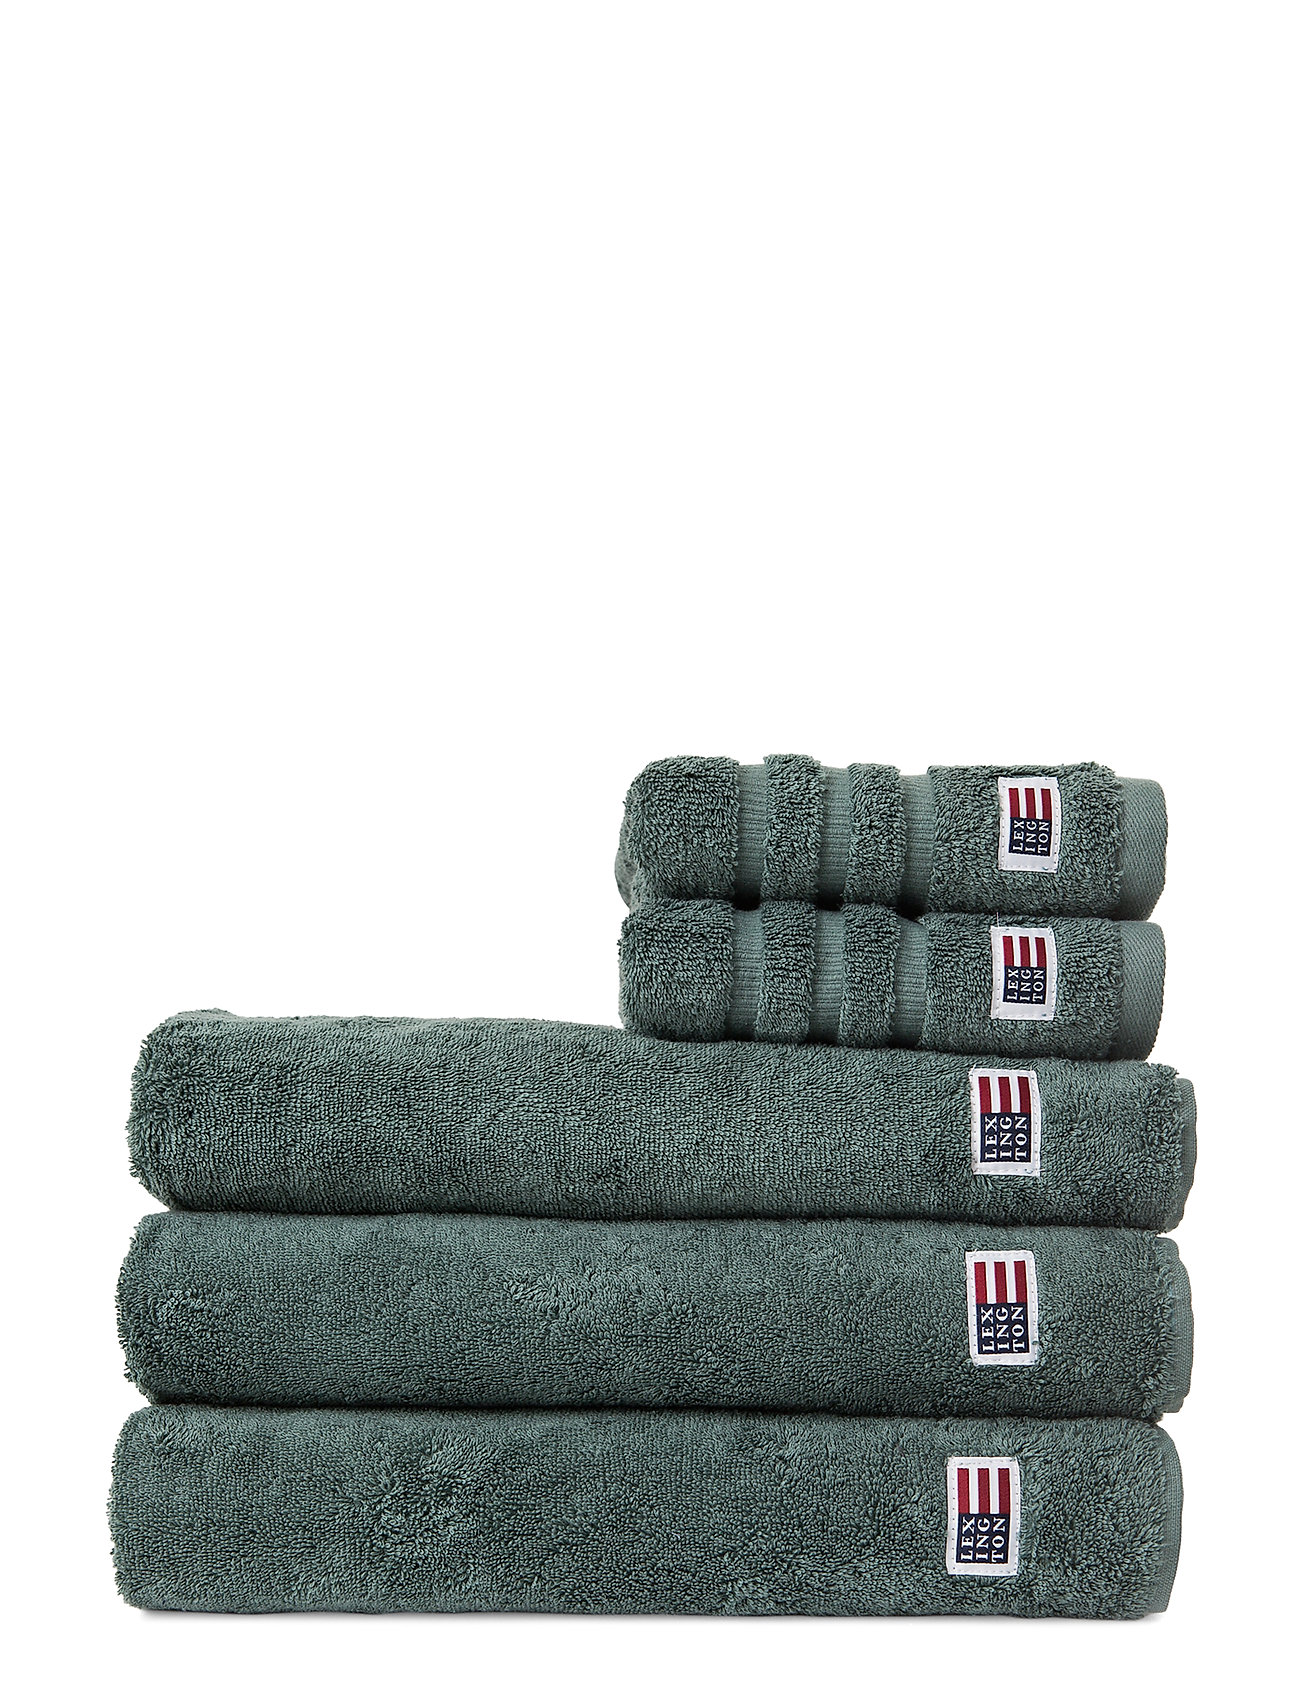 Lexington Home Original Towel Balsam grön Badrum